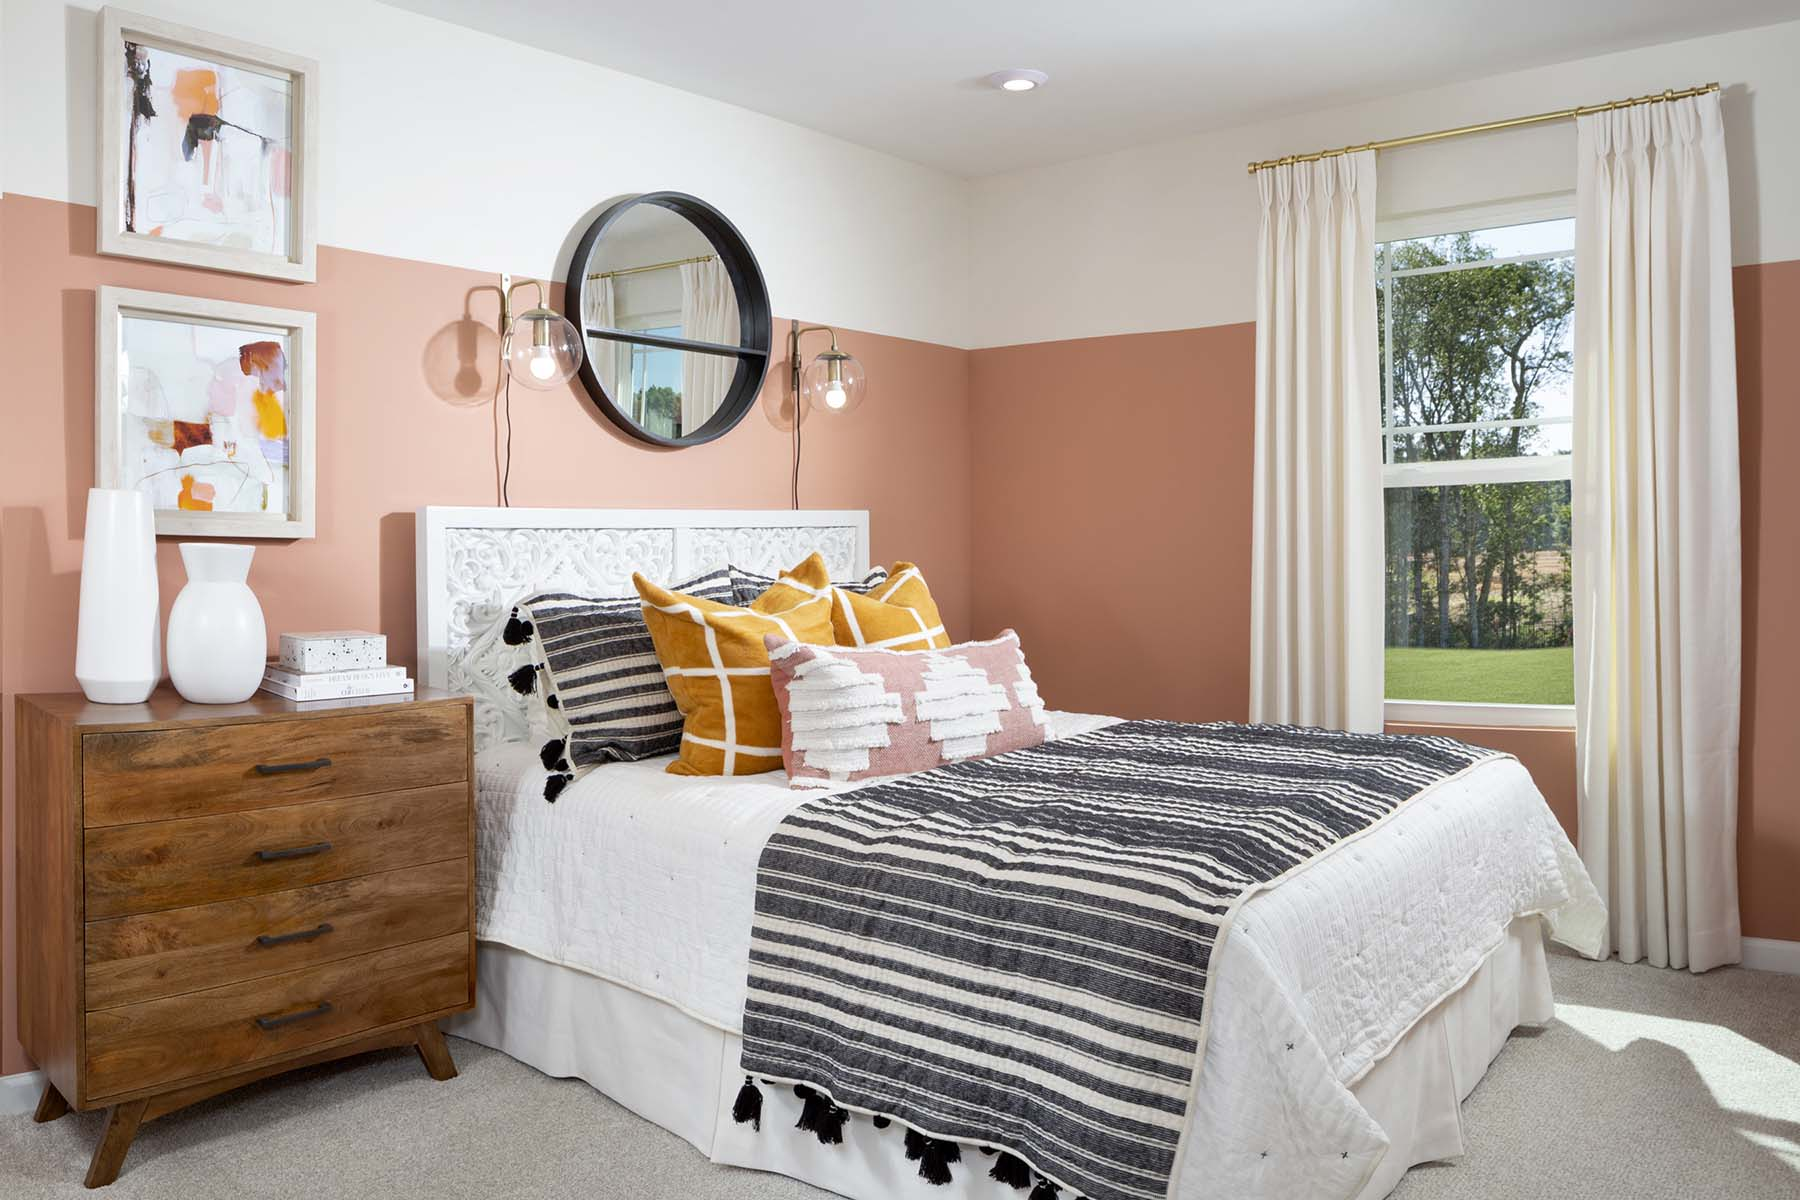 Ava Plan Bedroom at Galloway Park in Charlotte North Carolina by Mattamy Homes